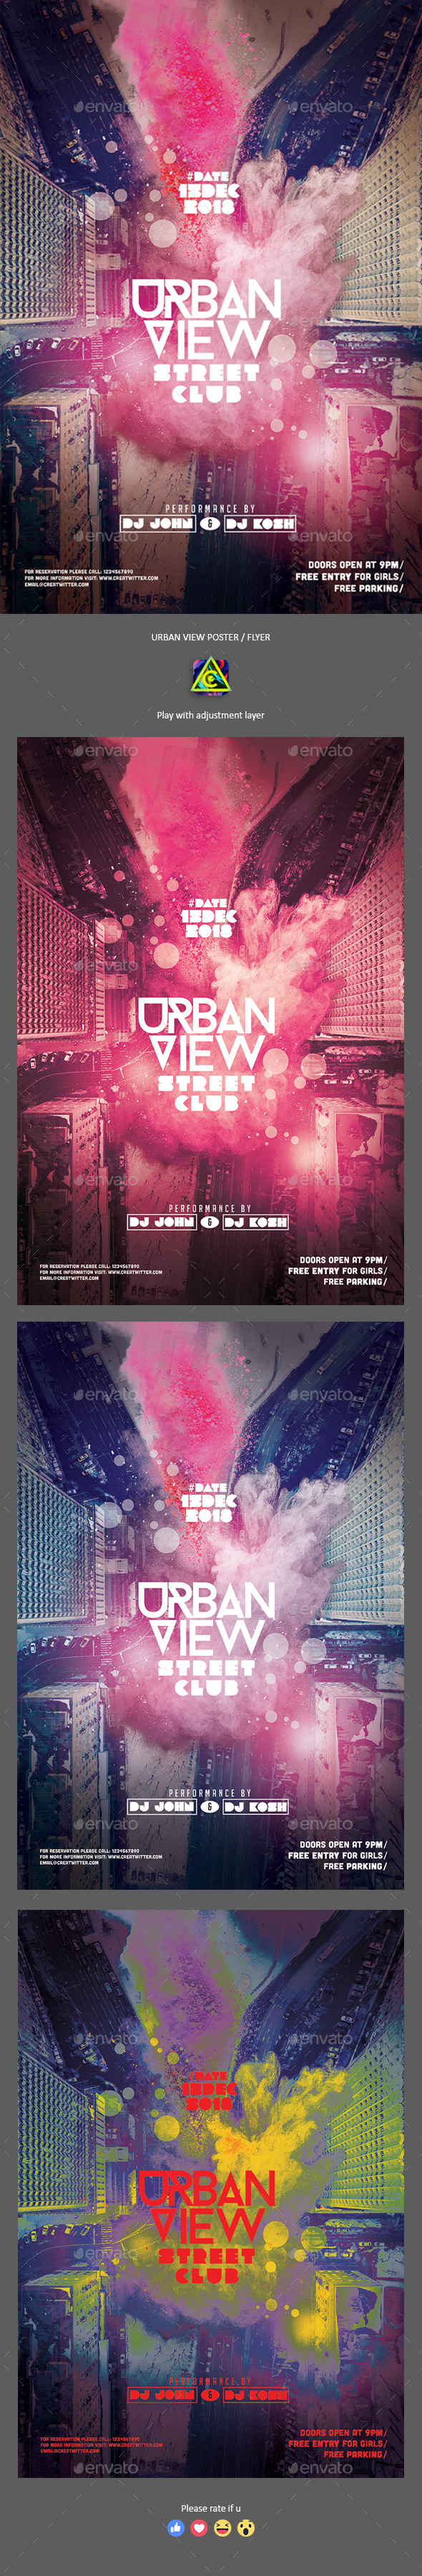 Urban View Poster / Flyer - Clubs & Parties Events